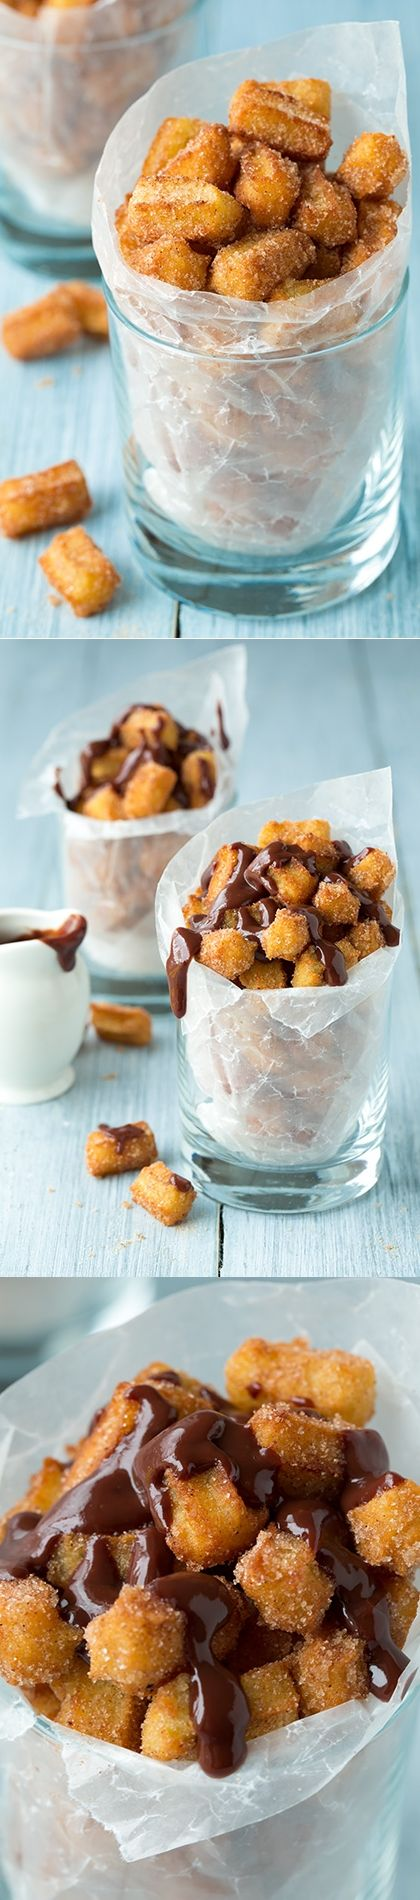 Churro Bites - With optional chocolate sauce. Everything is better when it's bite size.